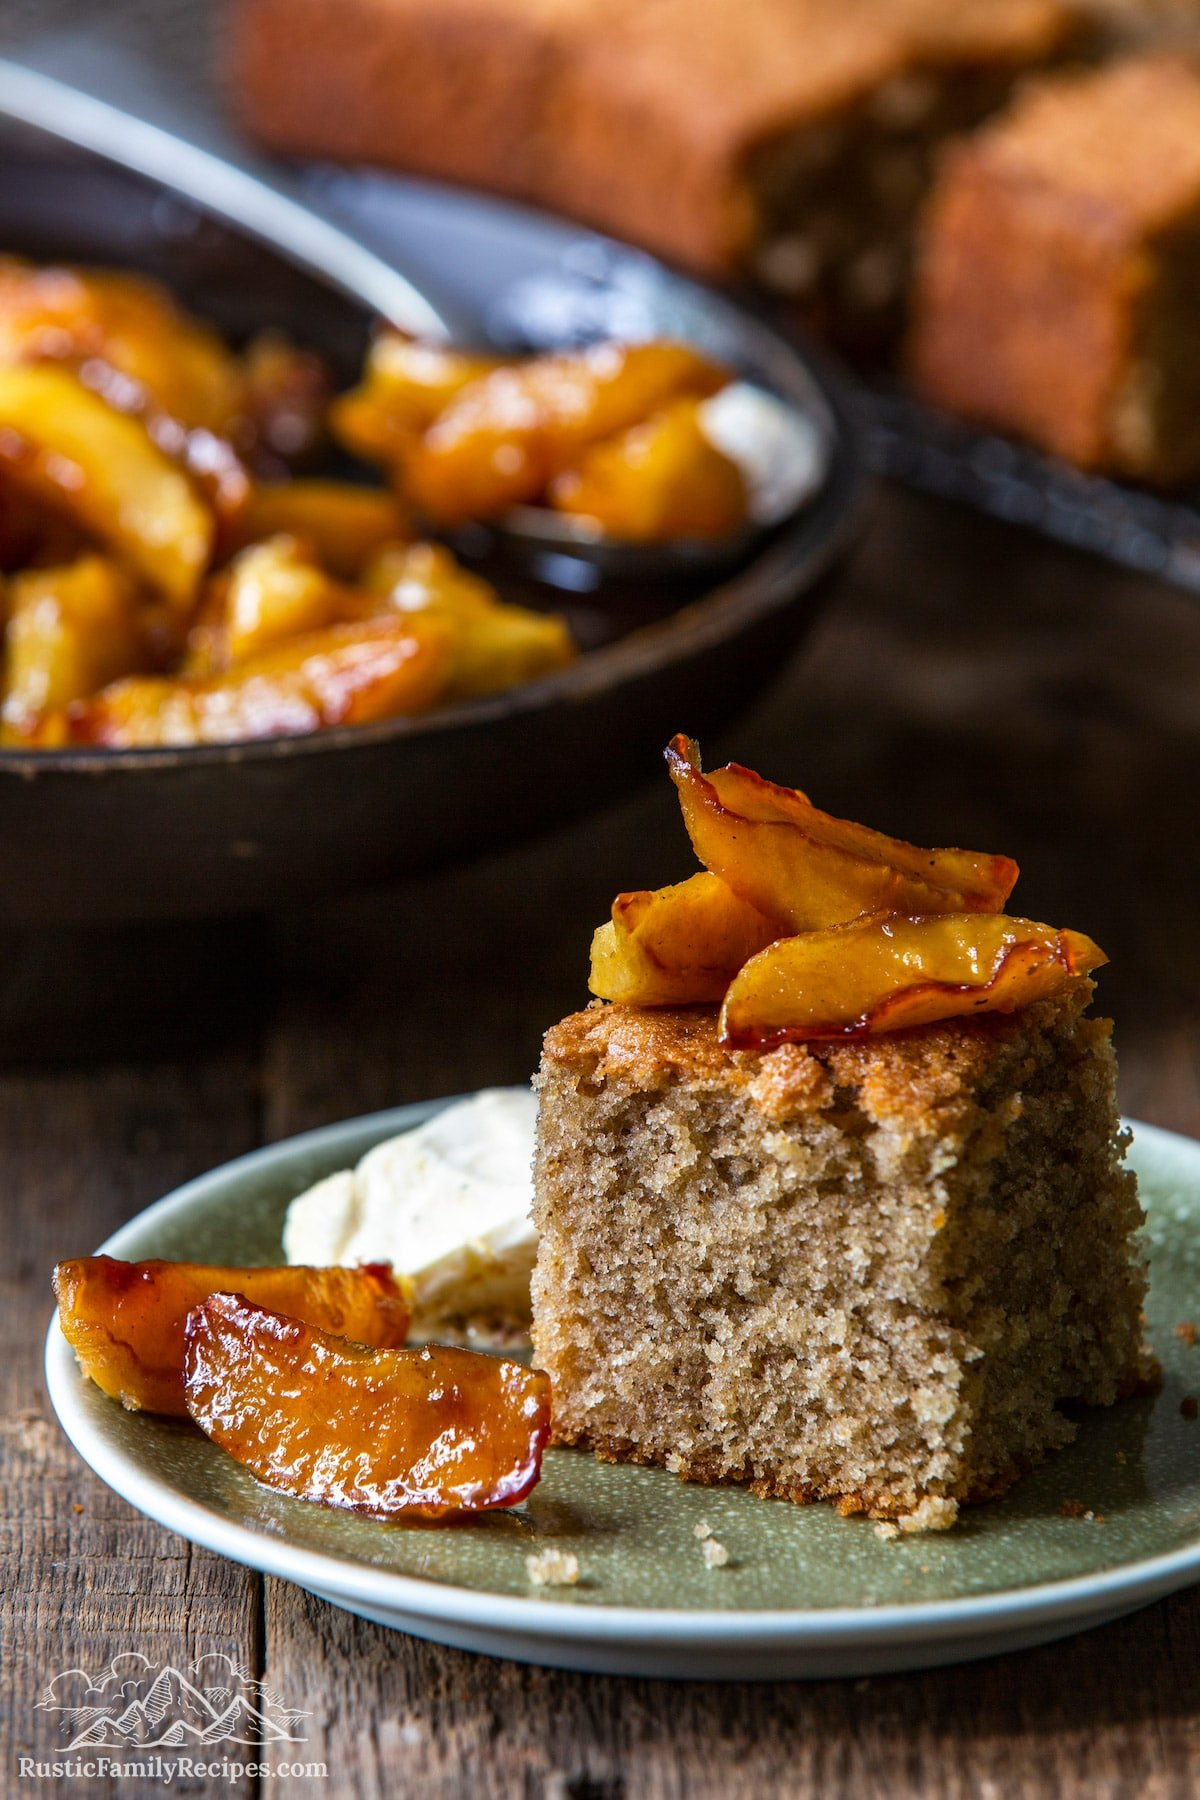 Spice Cake With Caramelized Apples on plate with skillet in background